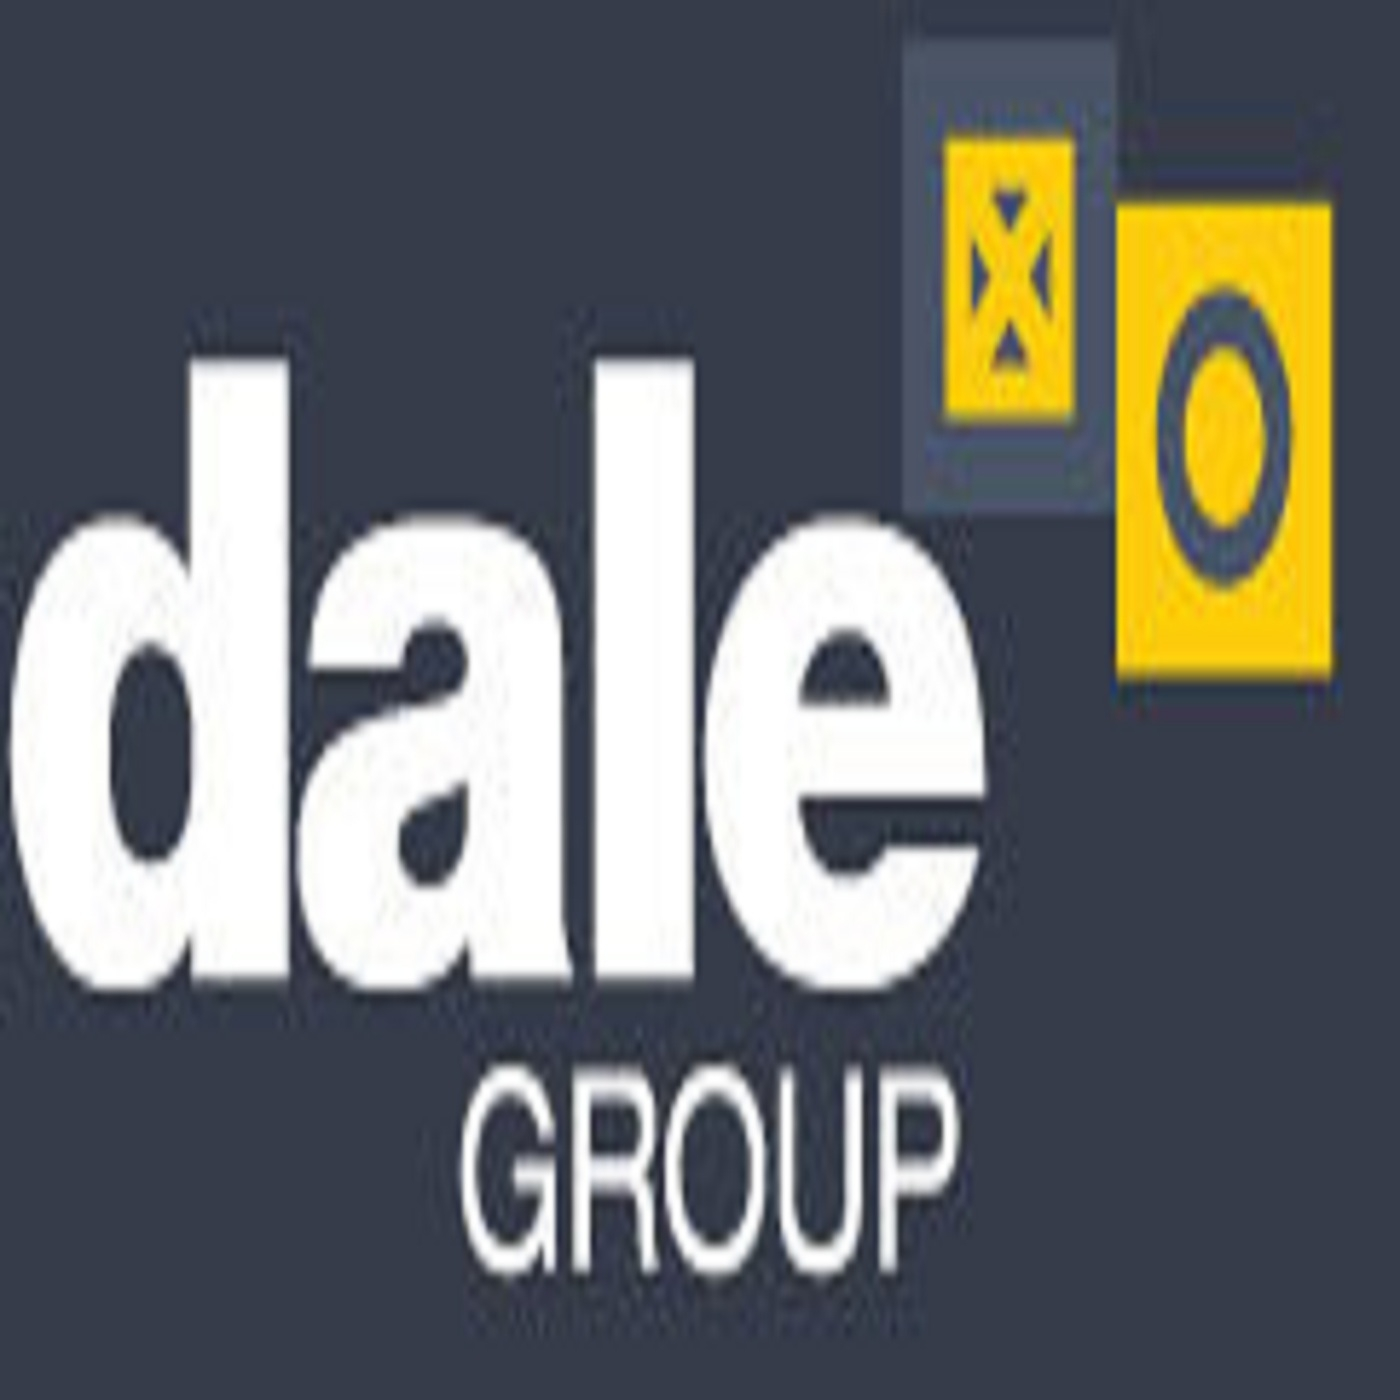 Dale Group (@dalegroup) Cover Image